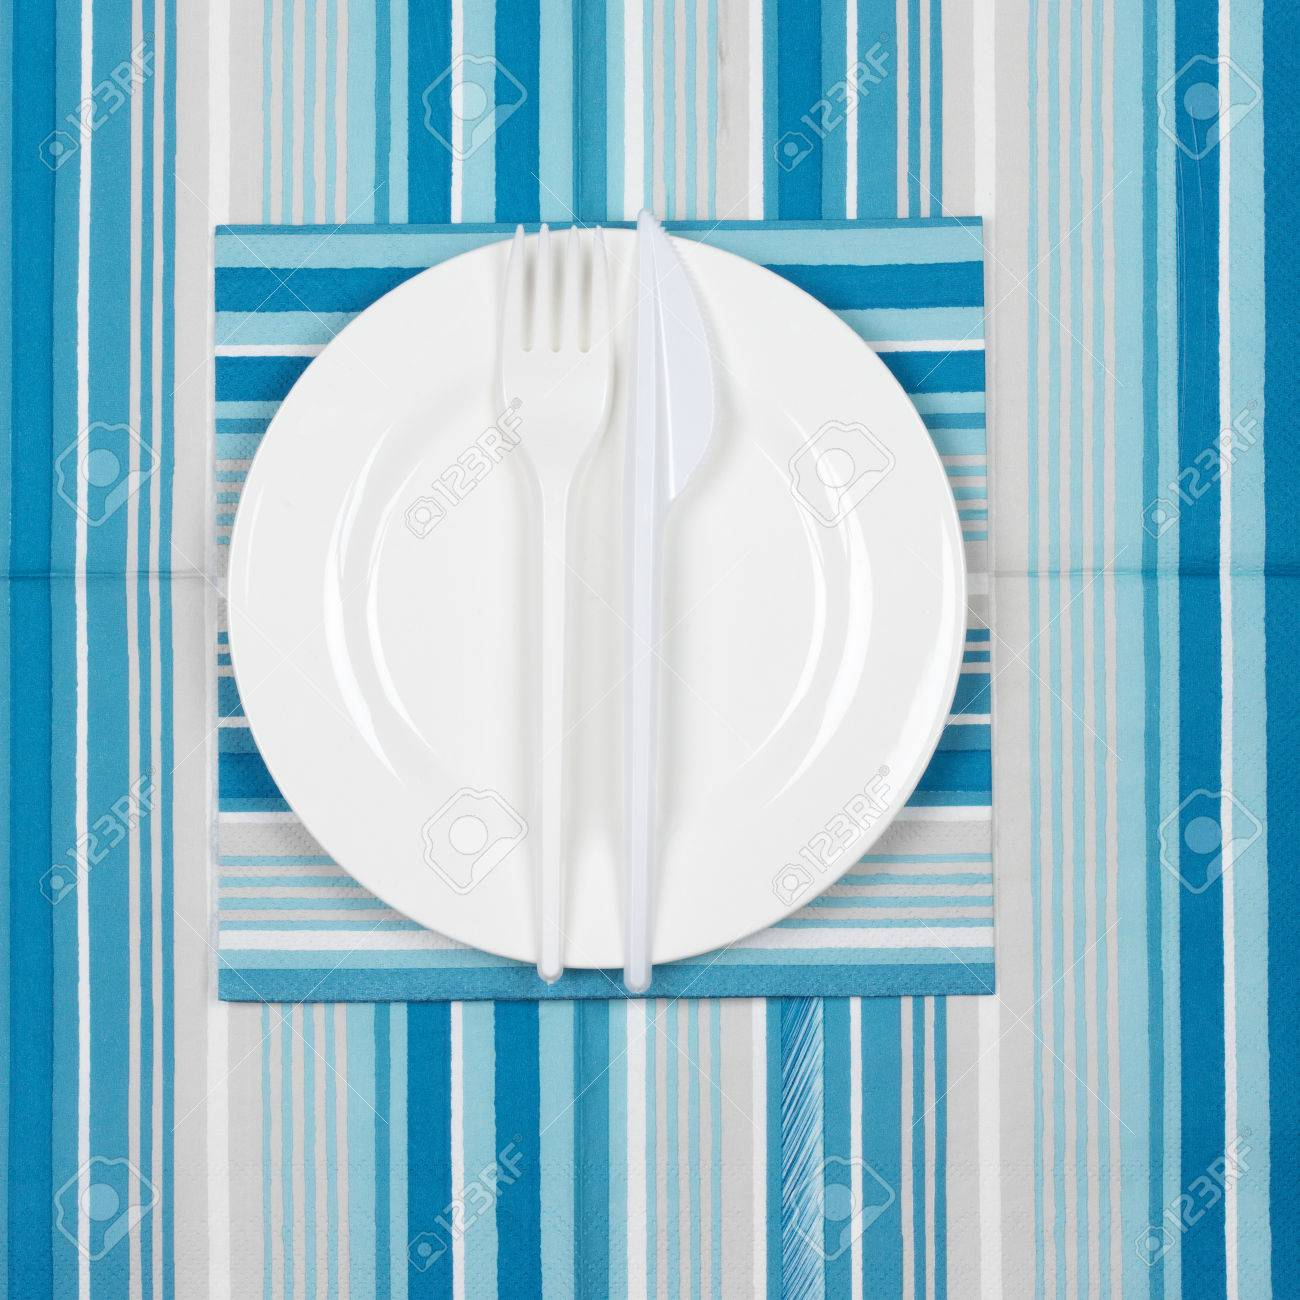 Disposable tableware set white plate with plastic fork and knife on blue striped paper napkins  sc 1 st  123RF.com & Disposable Tableware Set: White Plate With Plastic Fork And Knife ...